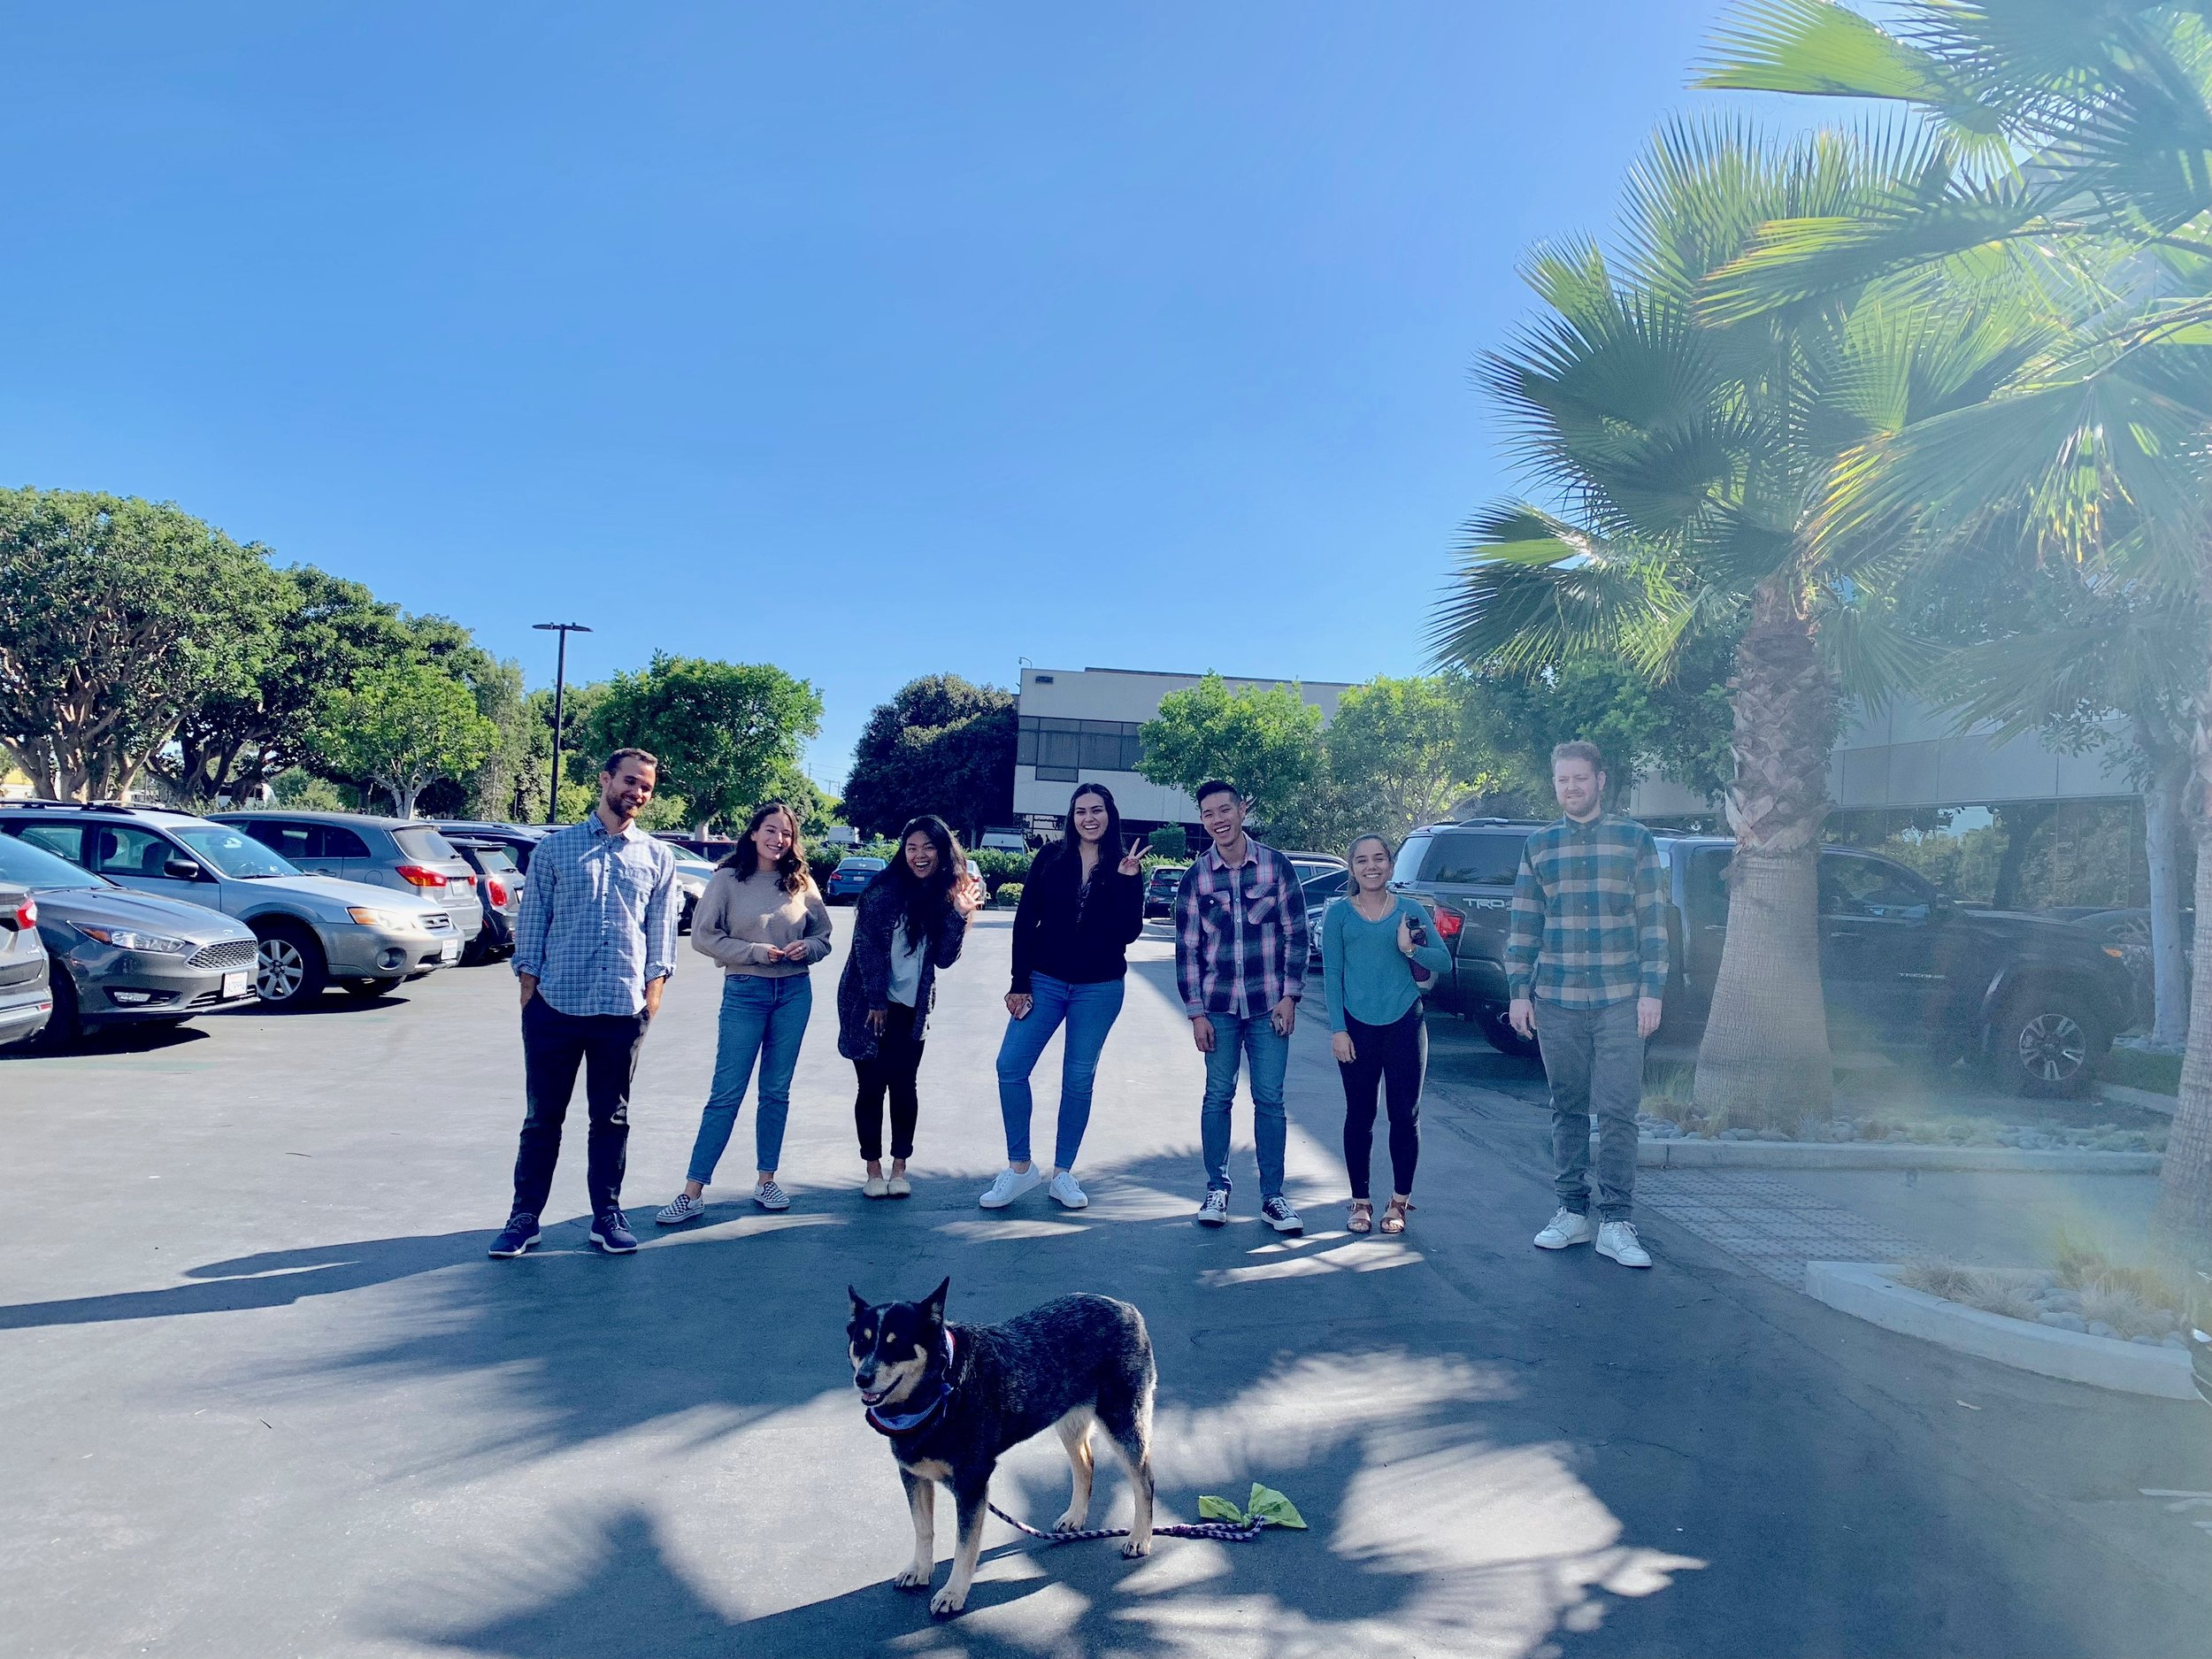 First Day of #BarkJump - Bring Your Dog to Work Day!